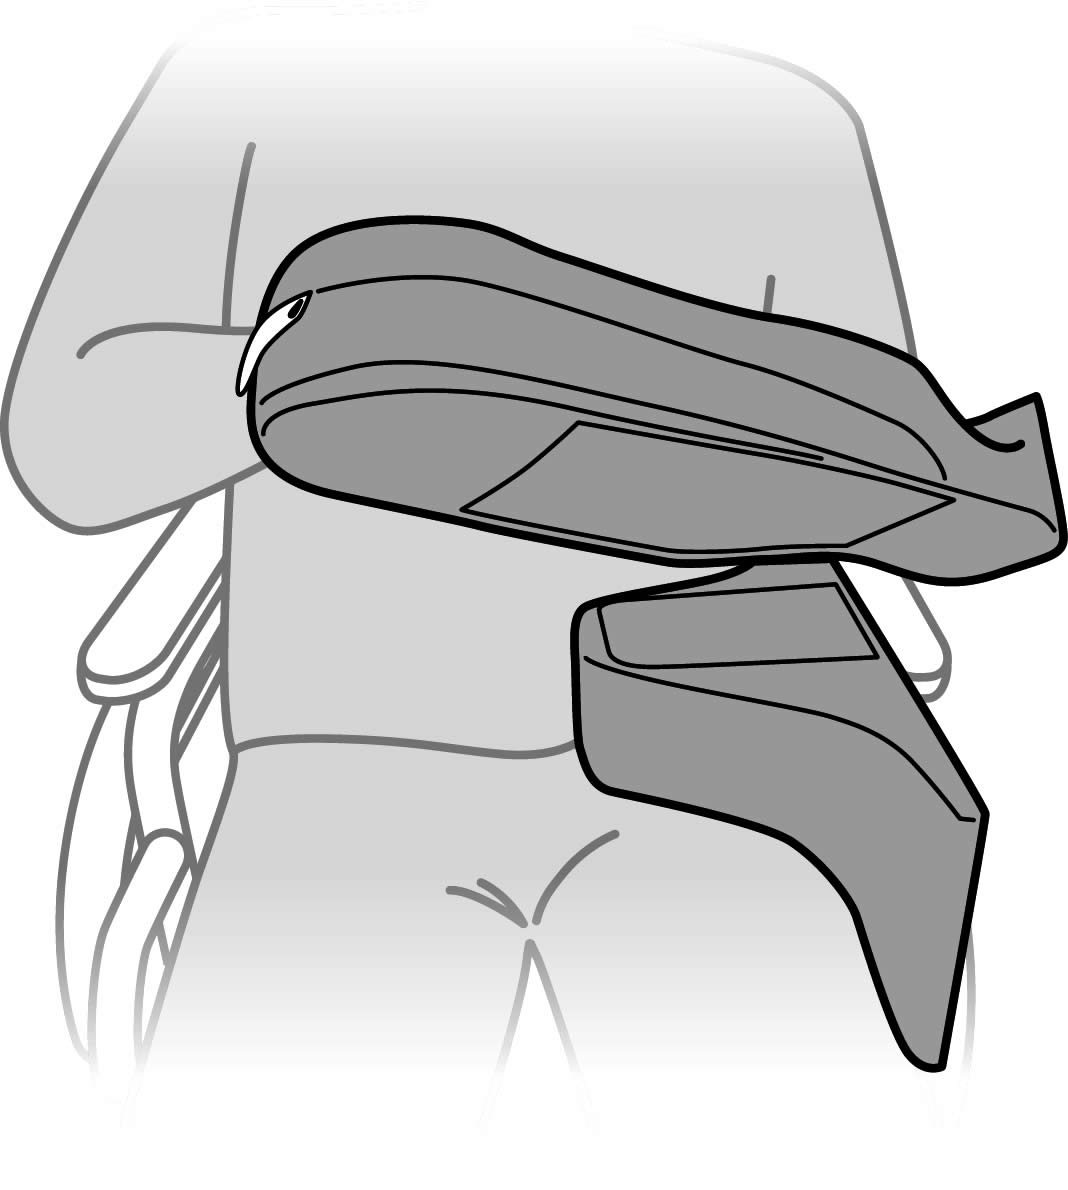 System upper limb positioning wedge block groove and zone